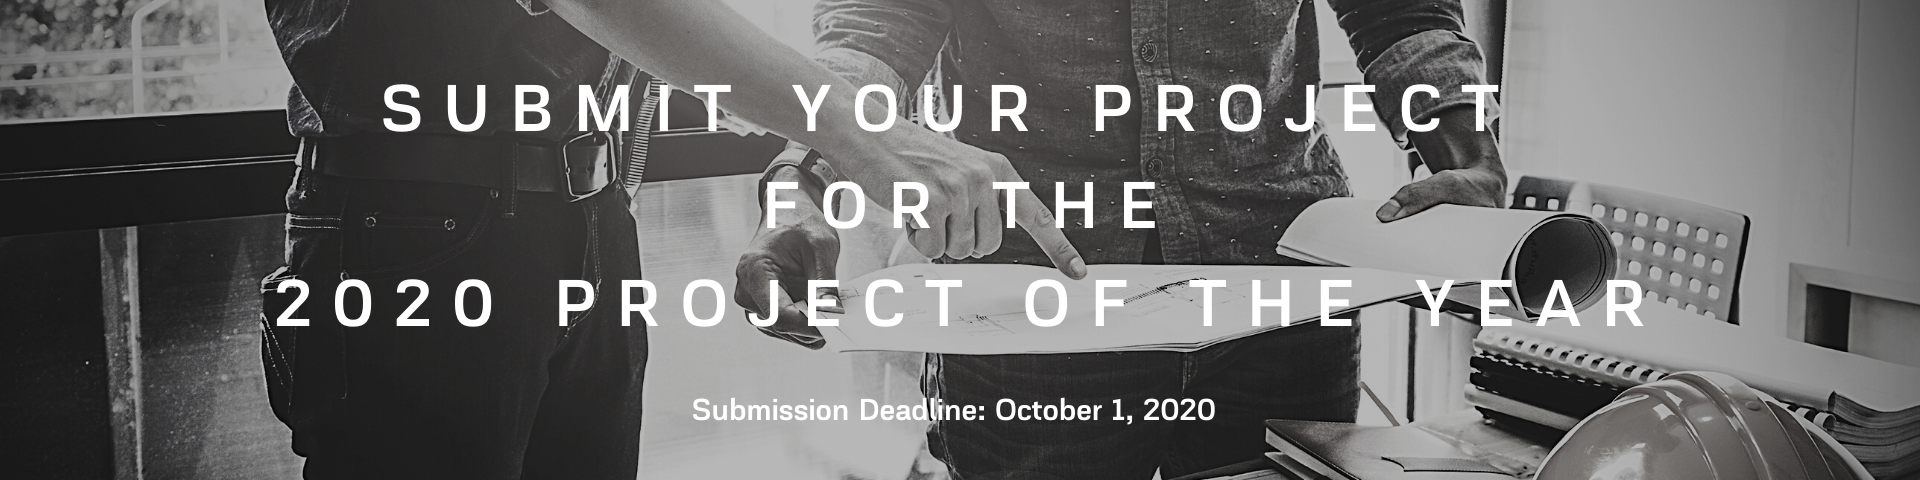 PROJECT SUBMISSION FORM